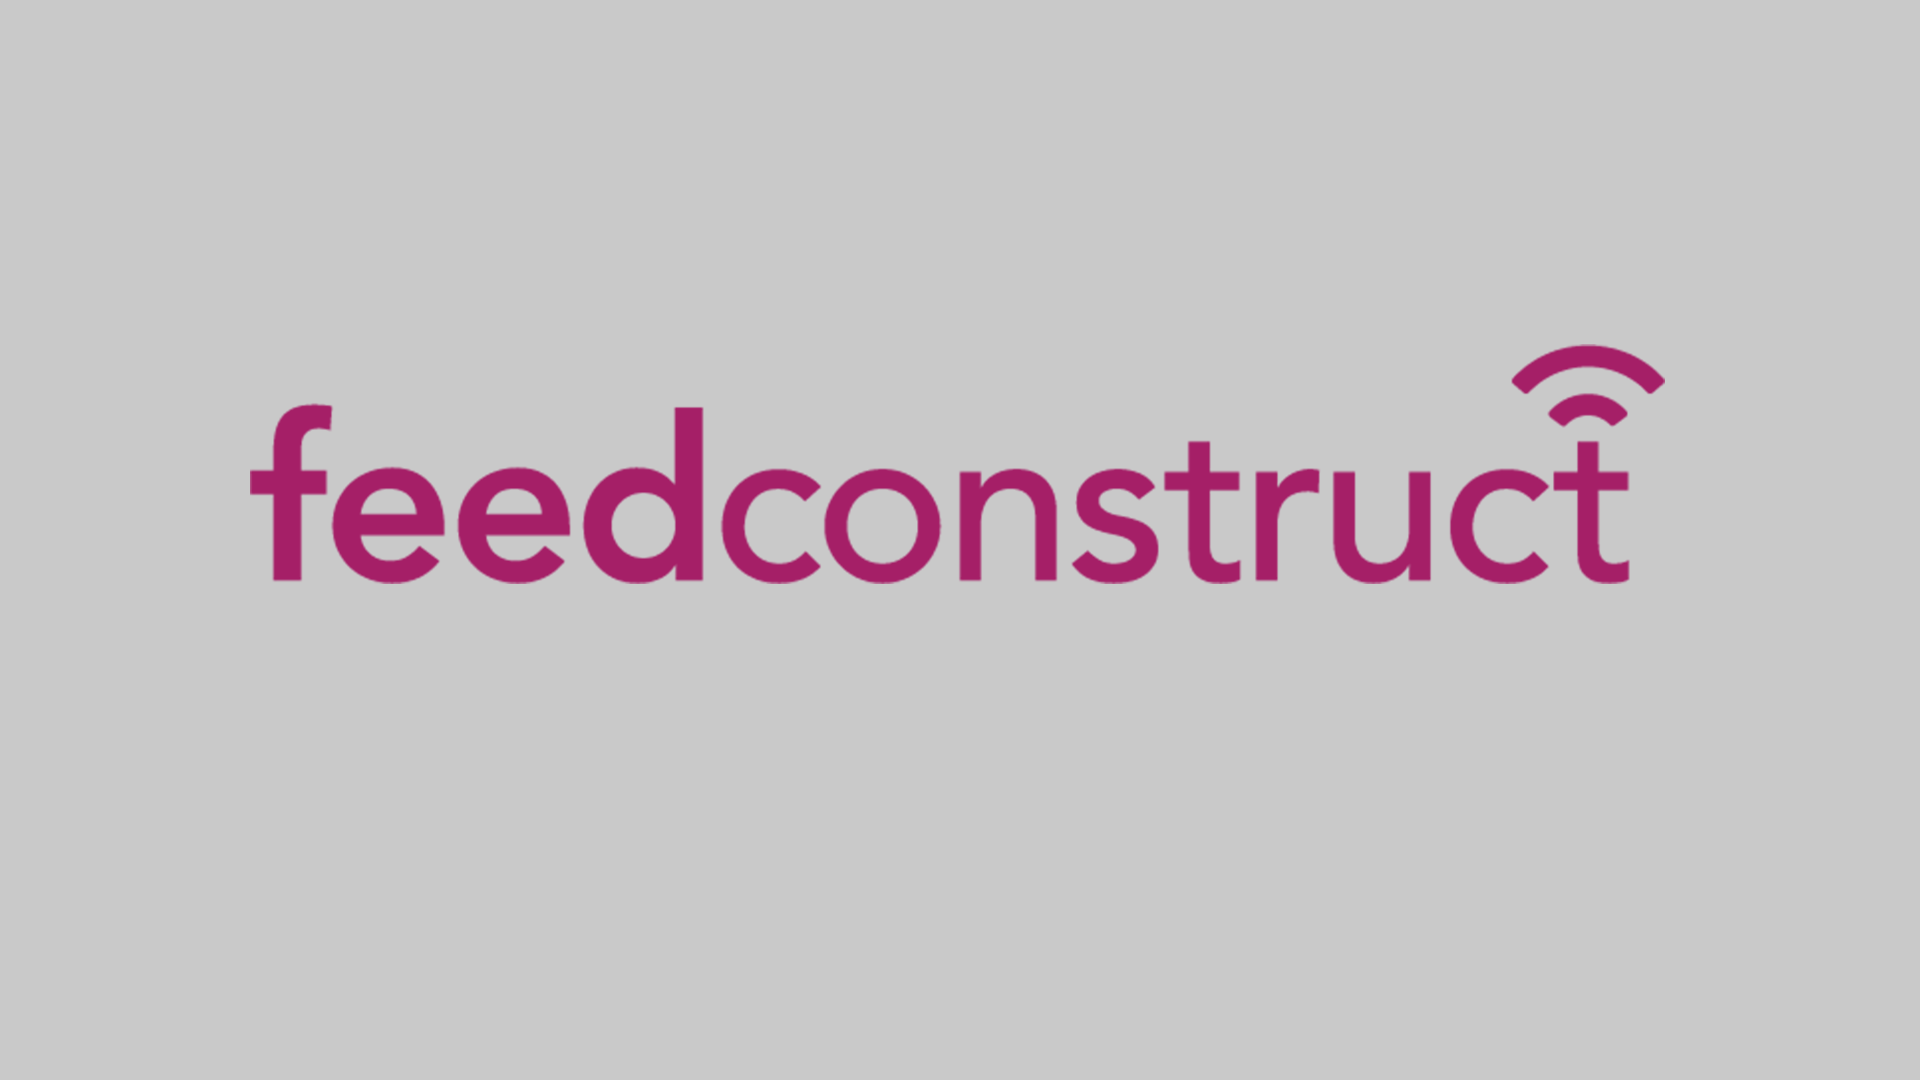 Megafeed rebranded as FeedConstruct